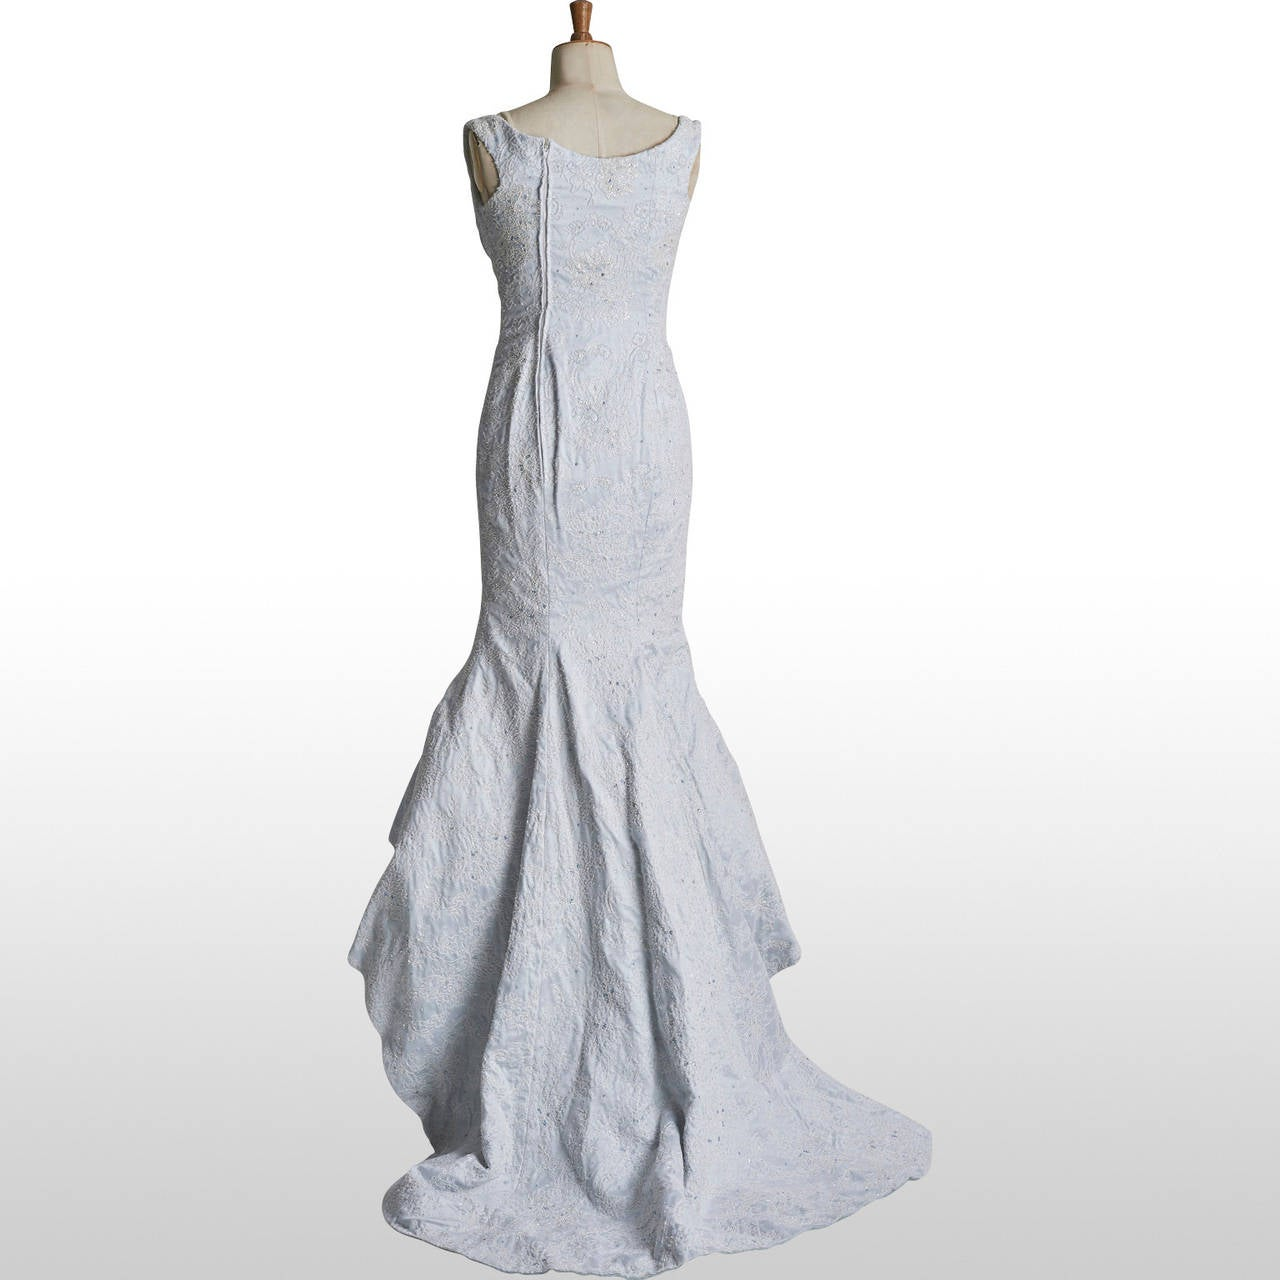 Vivienne Westwood Custom Made Wedding Gown For Sale At 1stdibs